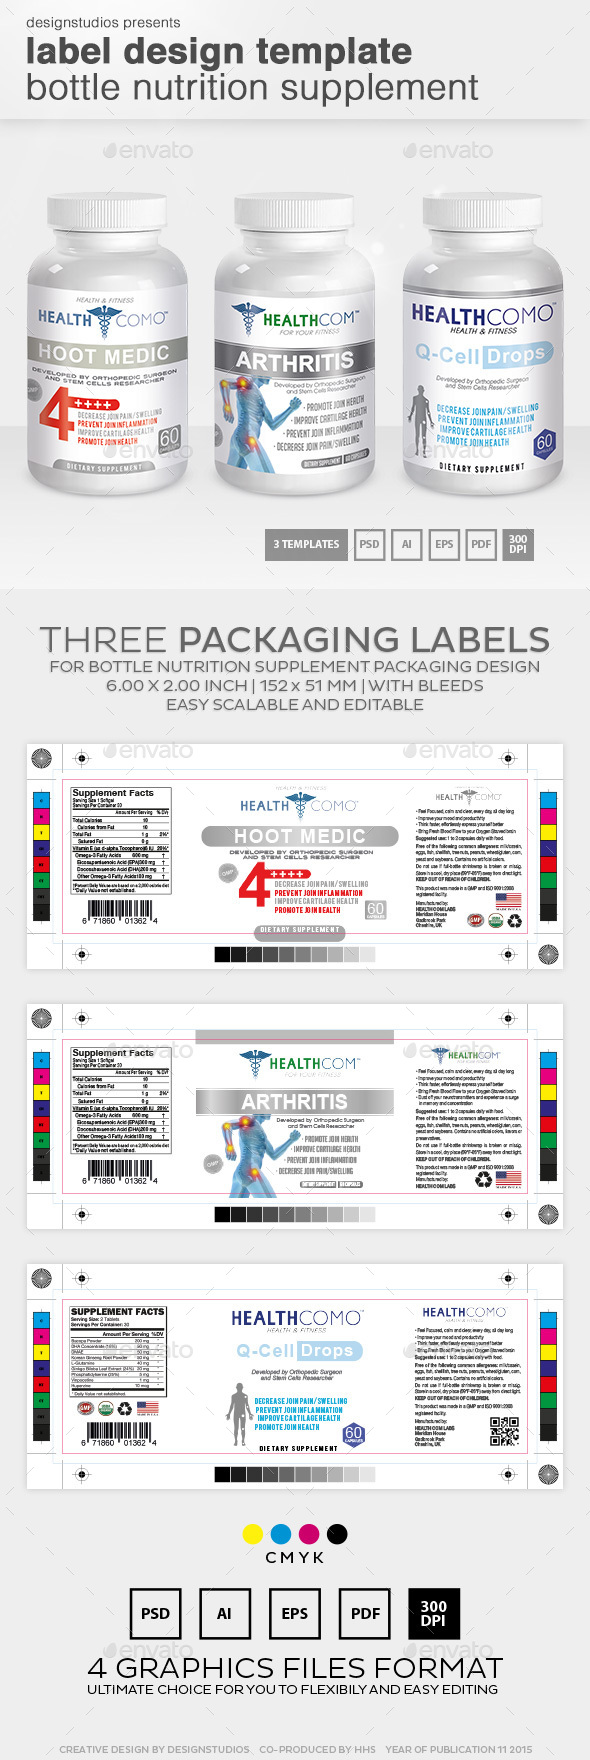 Label Design Template Bottle Nutrition Supplement by designstudios – Packing Label Template